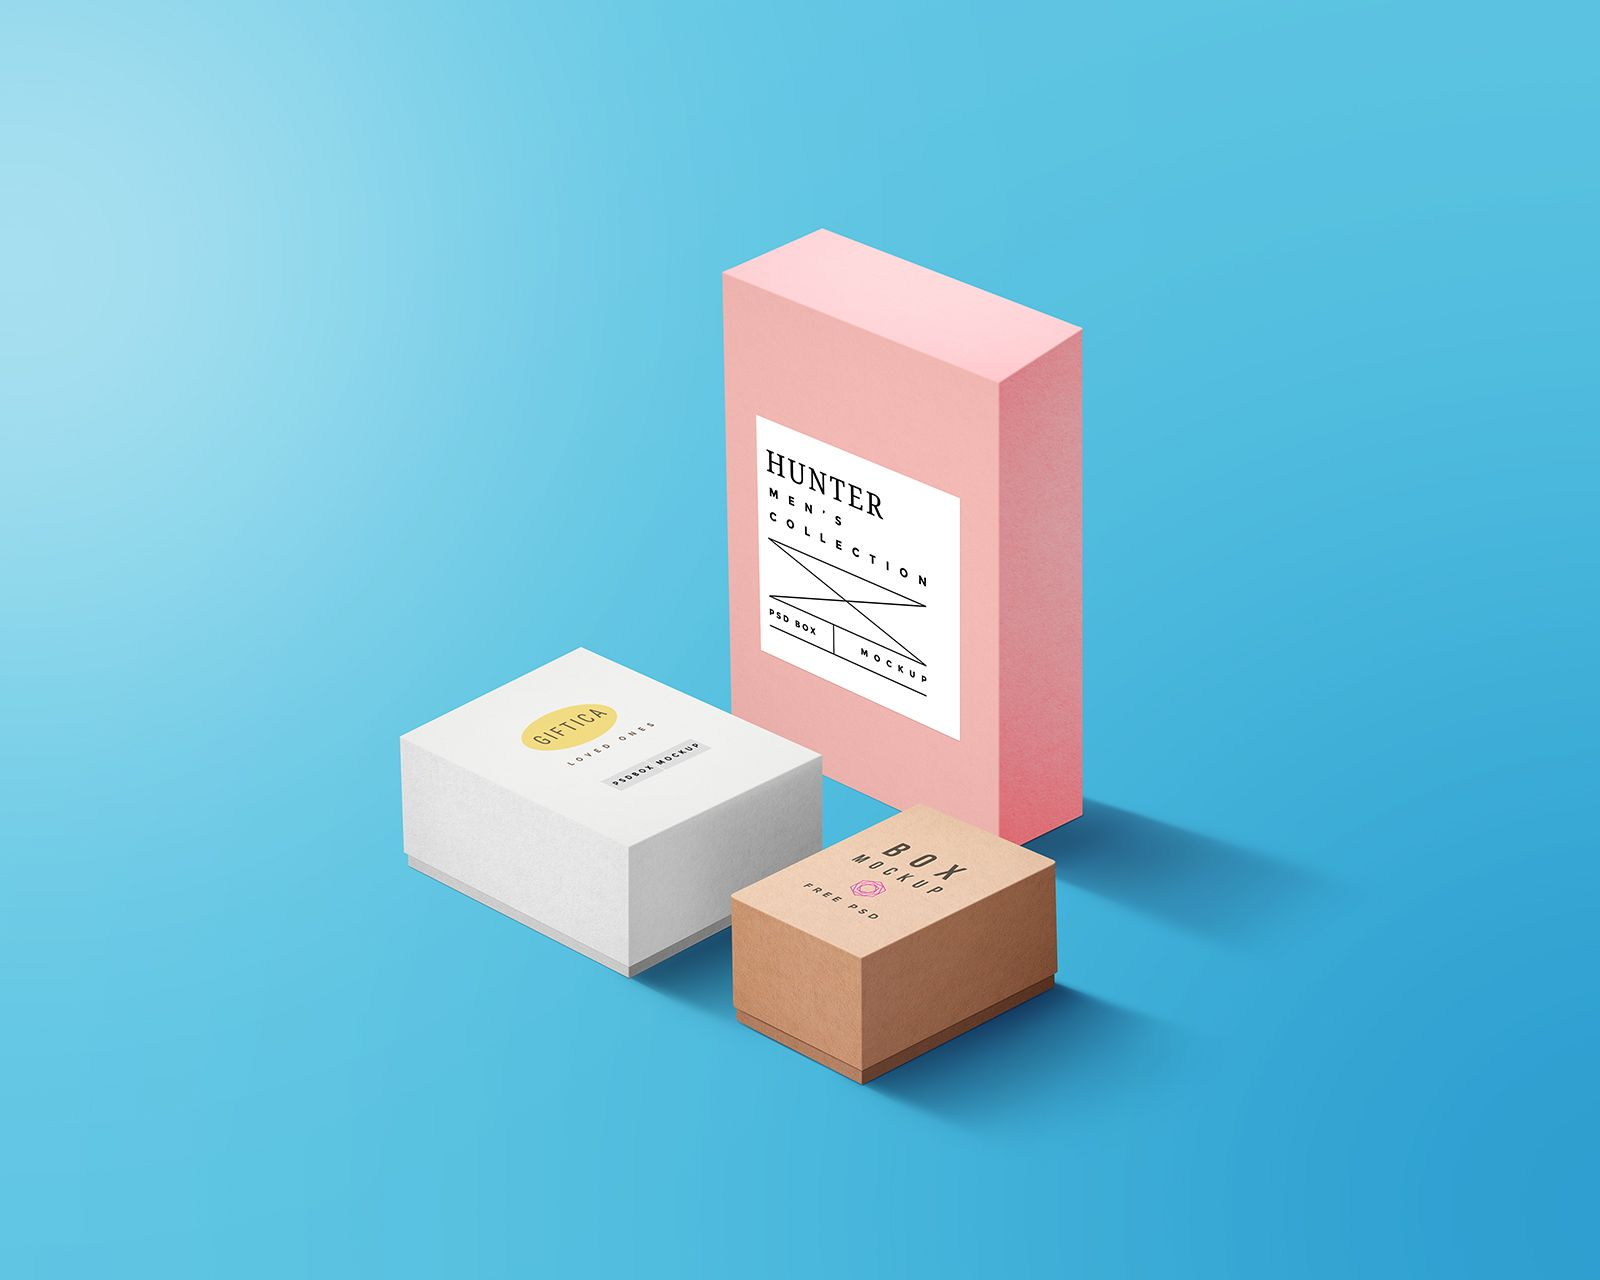 Download Boxes Packaging Mockup Psd Packaging Mockup Mockup Psd Box Packaging